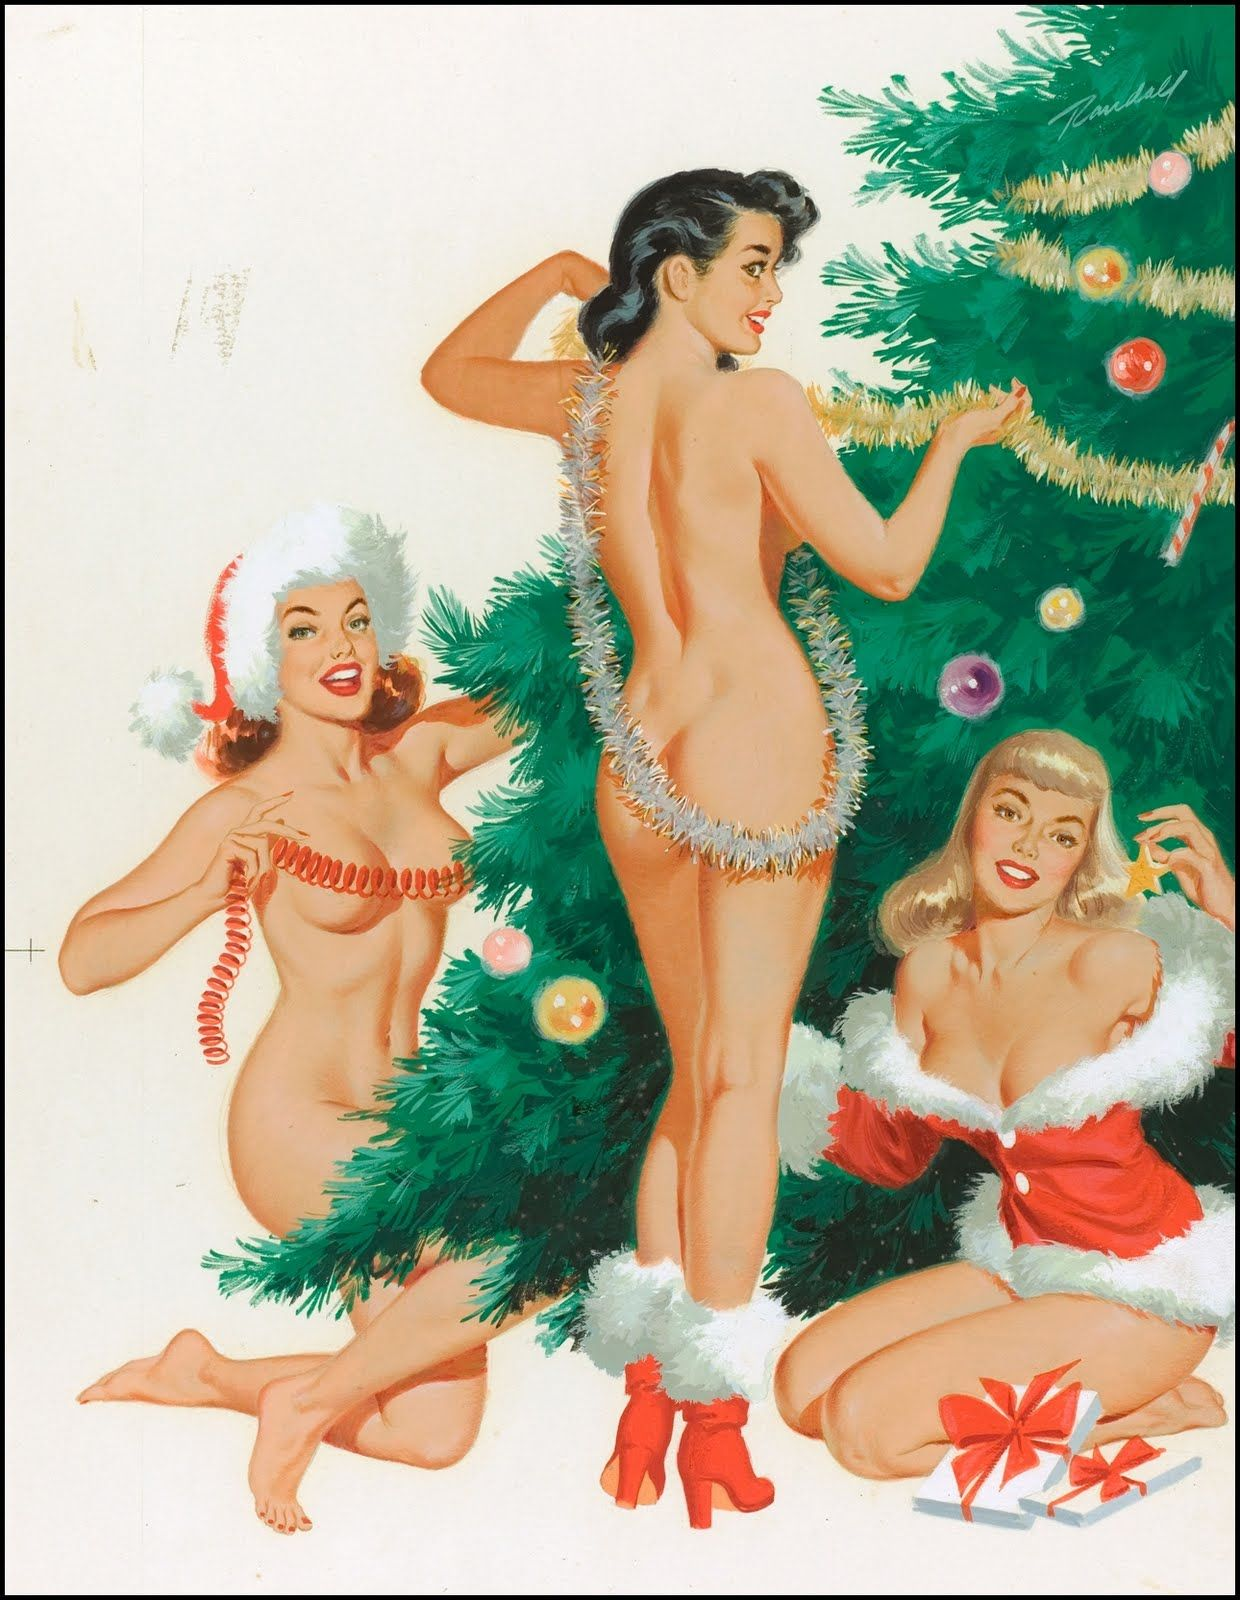 vintage fantasy art | Jingles, Joy, and Merry . December 1954 ...